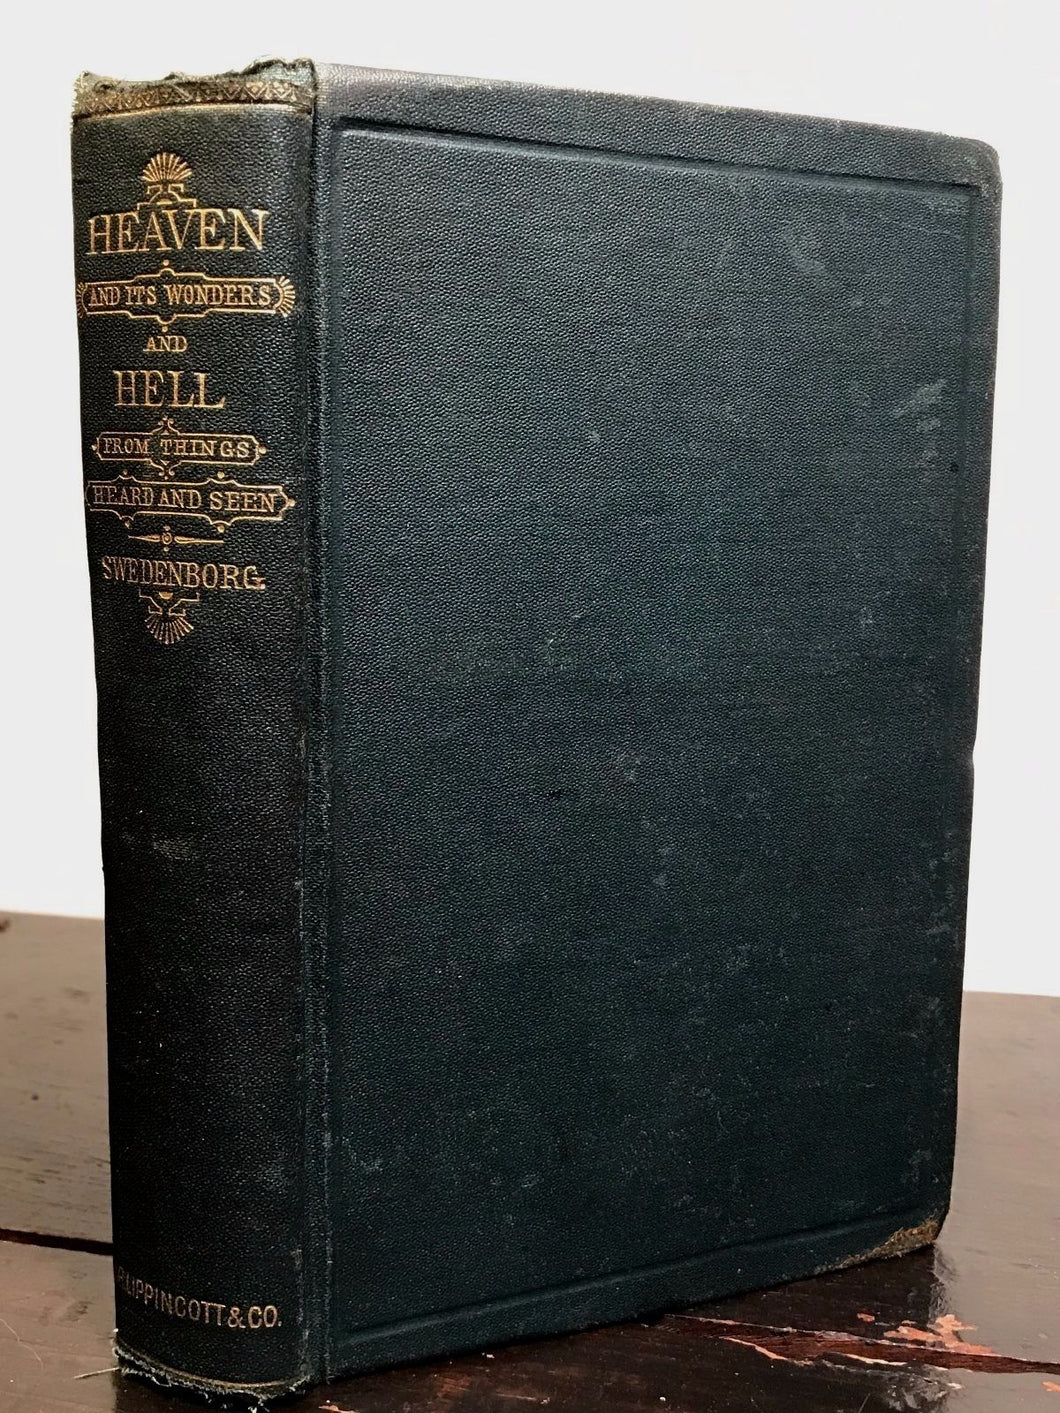 HEAVEN AND ITS WONDERS AND HELL FROM THINGS HEARD AND SEEN ~ Swedenborg, 1884